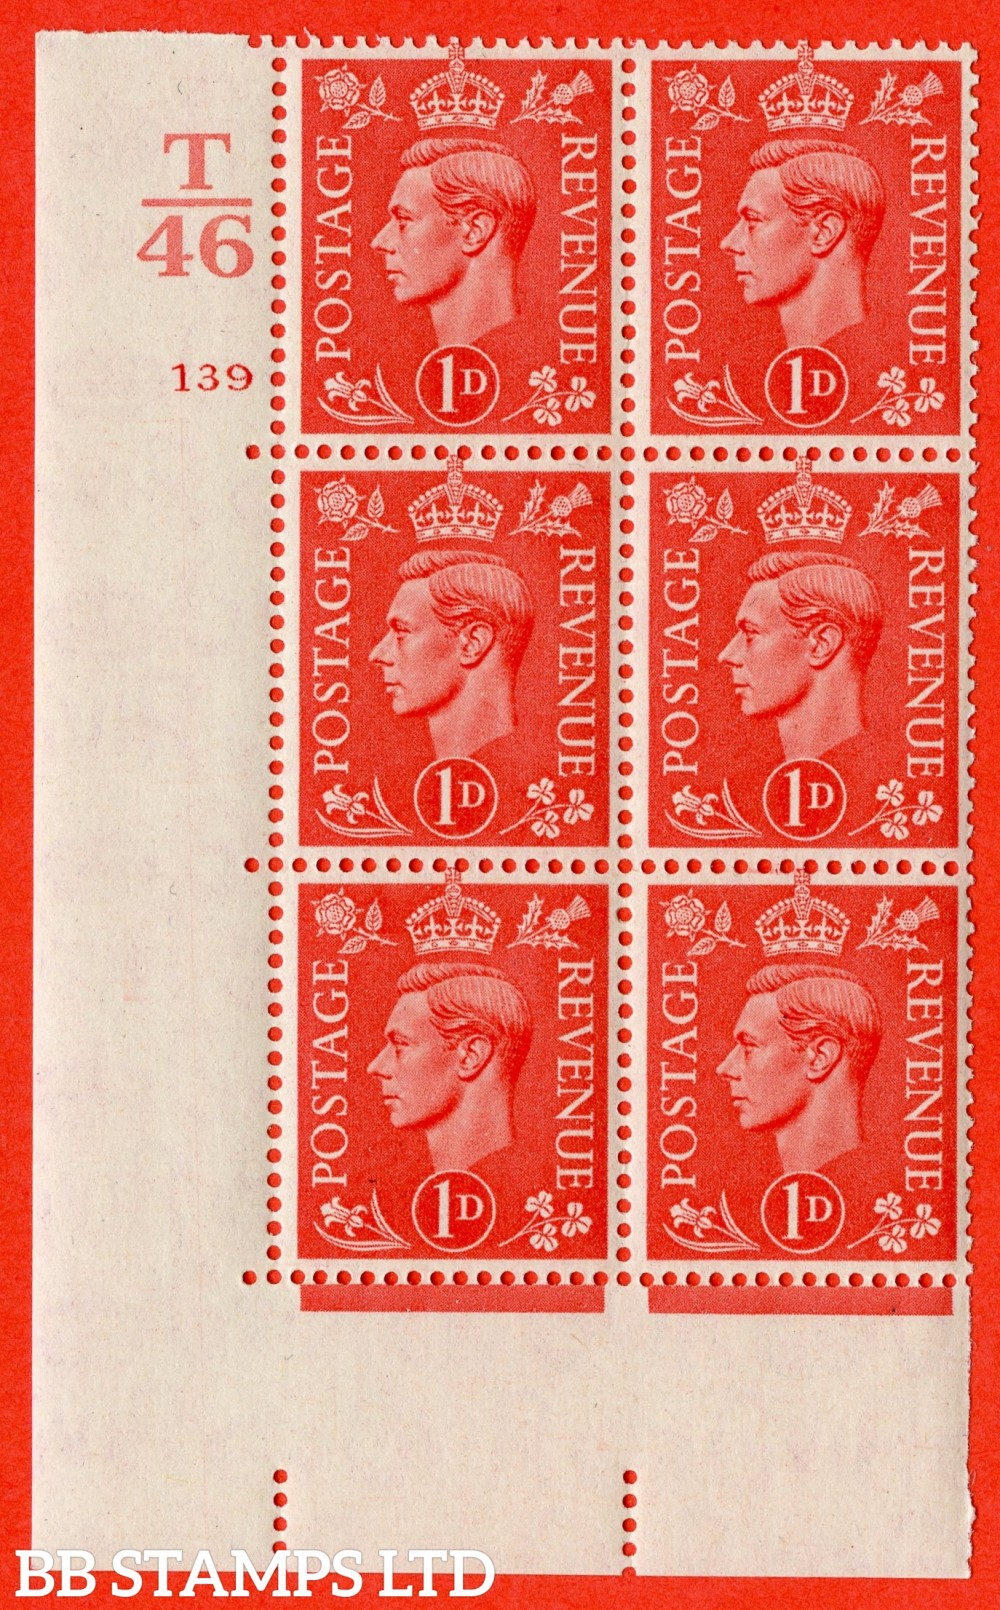 """SG. 486. Q5. 1d Pale scarlet. A fine lightly mounted mint """" Control T46  cylinder 139 no dot """" control block of 6 with perf type 5 E/I."""